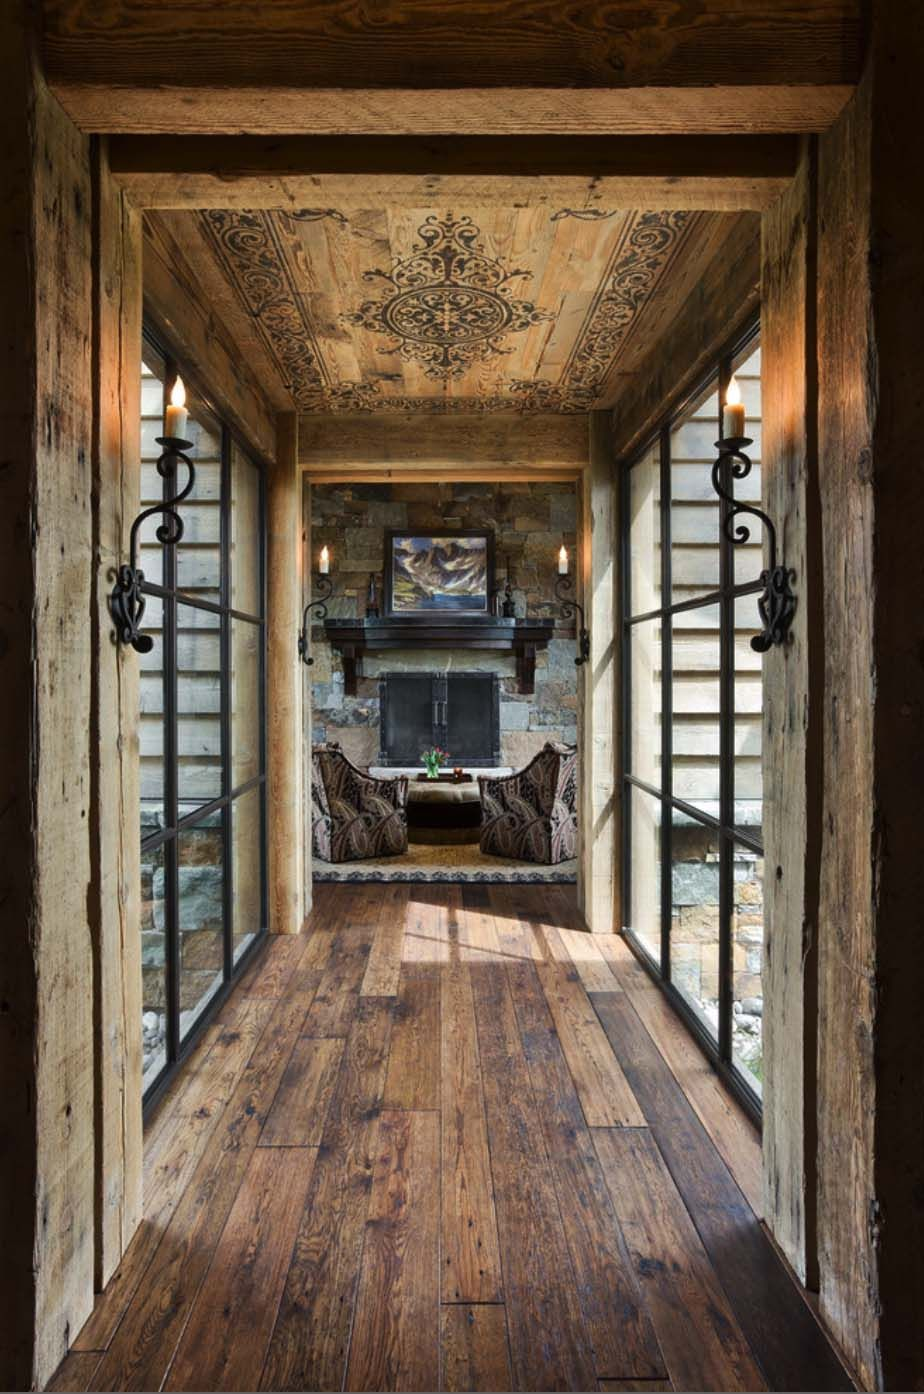 Rustic Design Ideas: Rustic Yet Refined Mountain Home Surrounded By Montana's